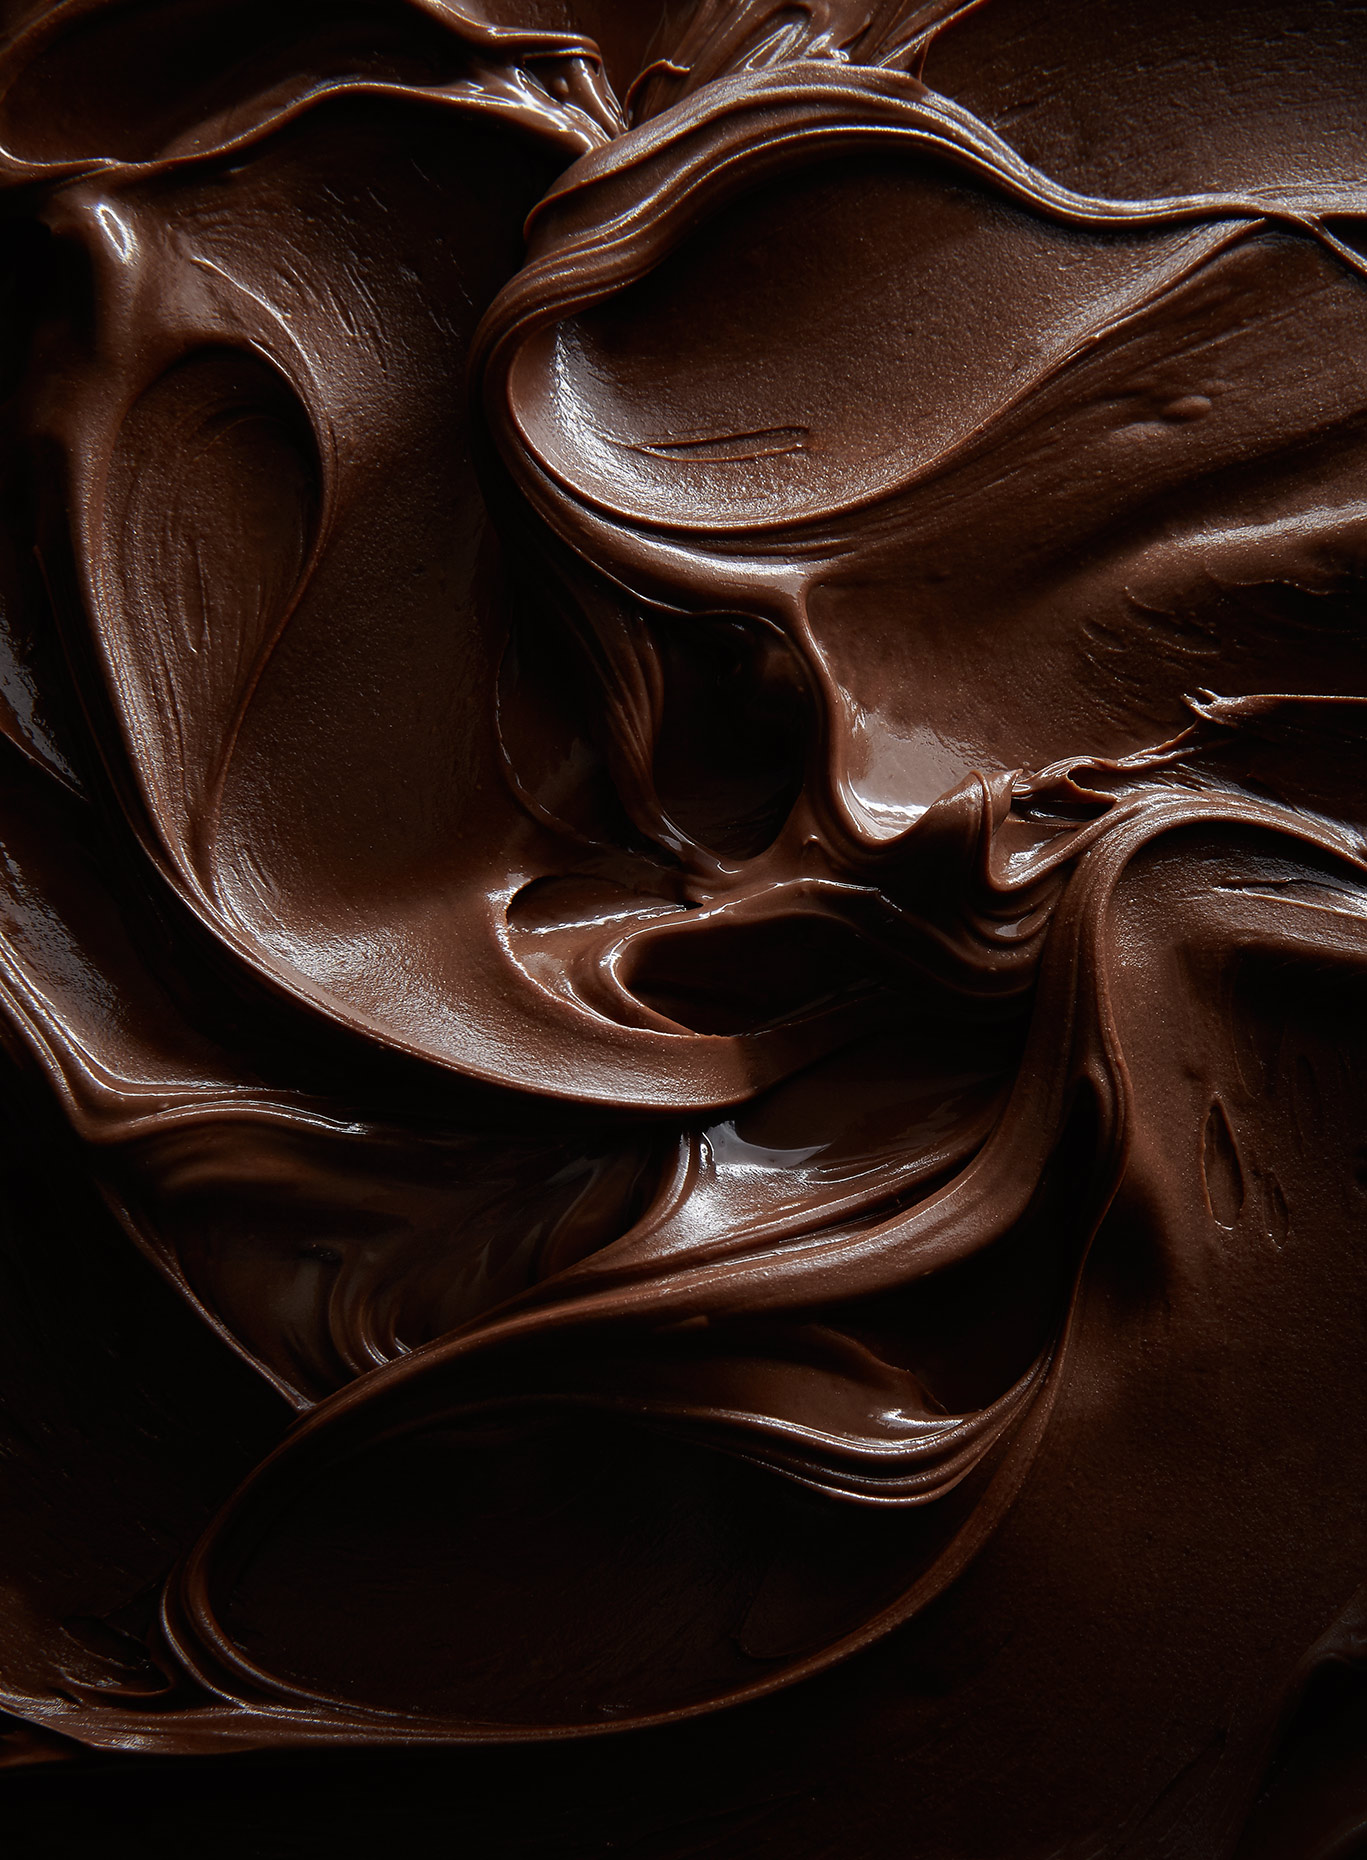 Chocolate_Frosting_2_2017_1009_Final